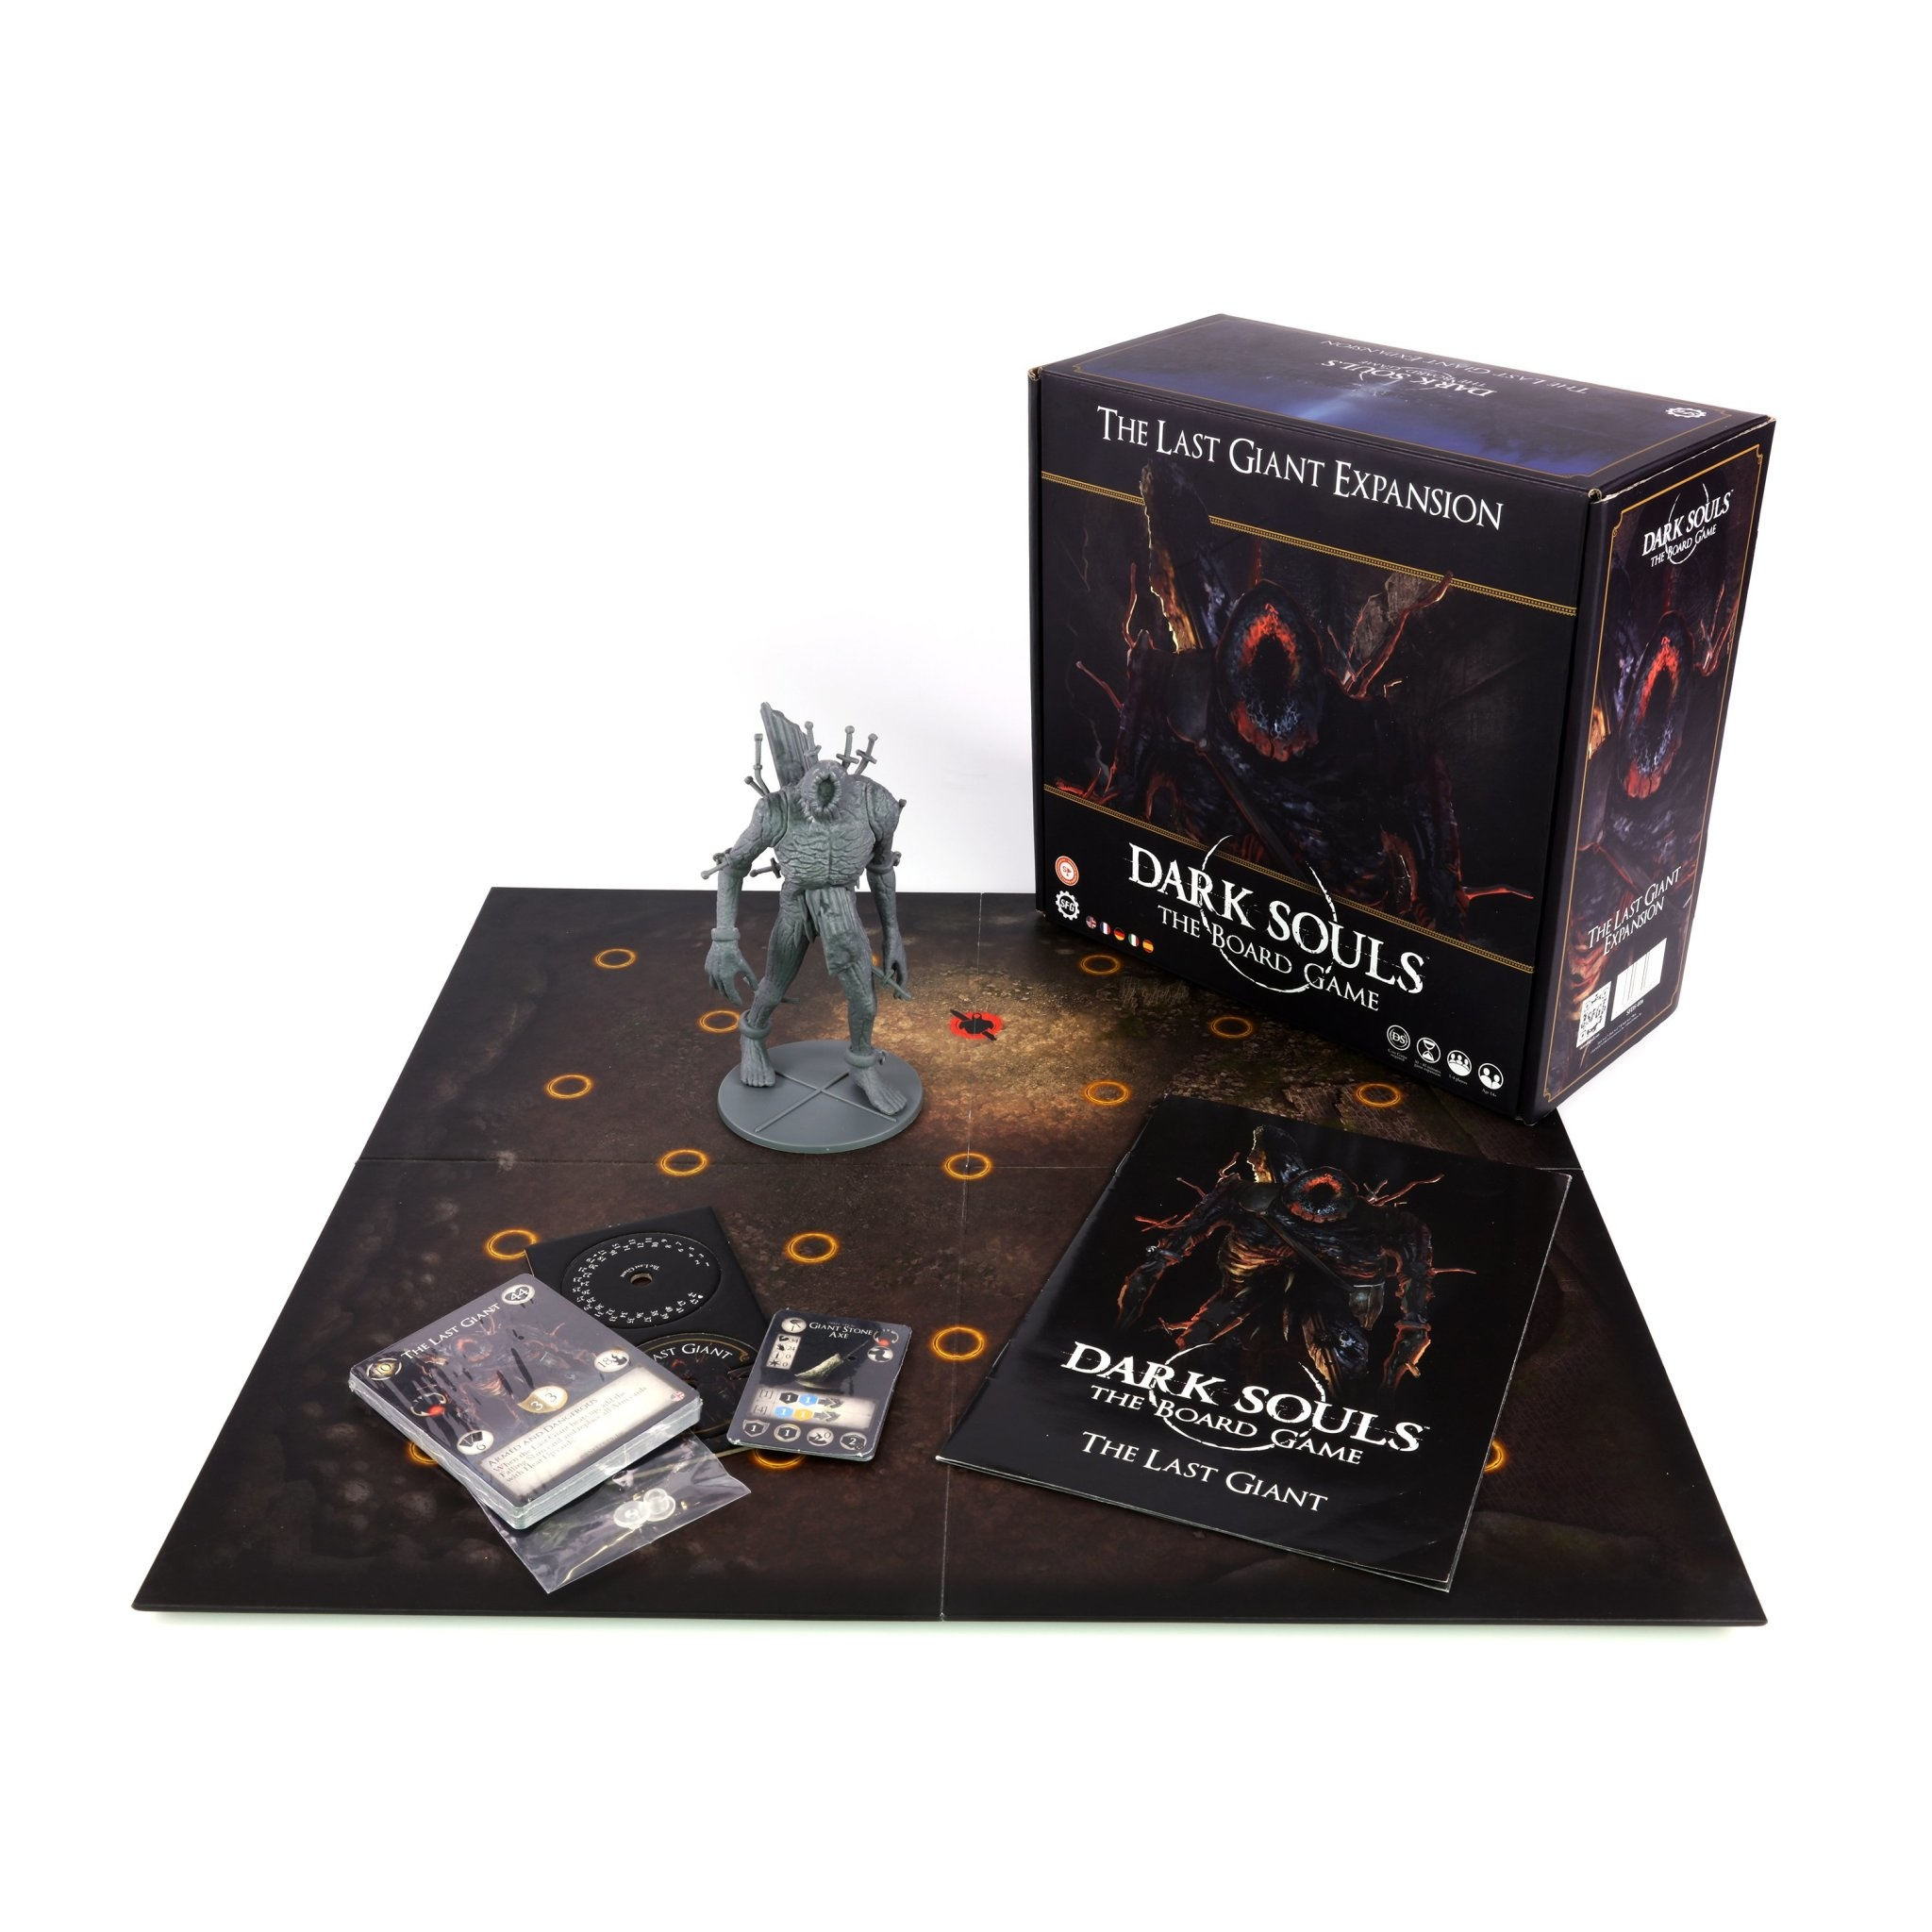 Steamforged Dark souls board game: The Last Giant